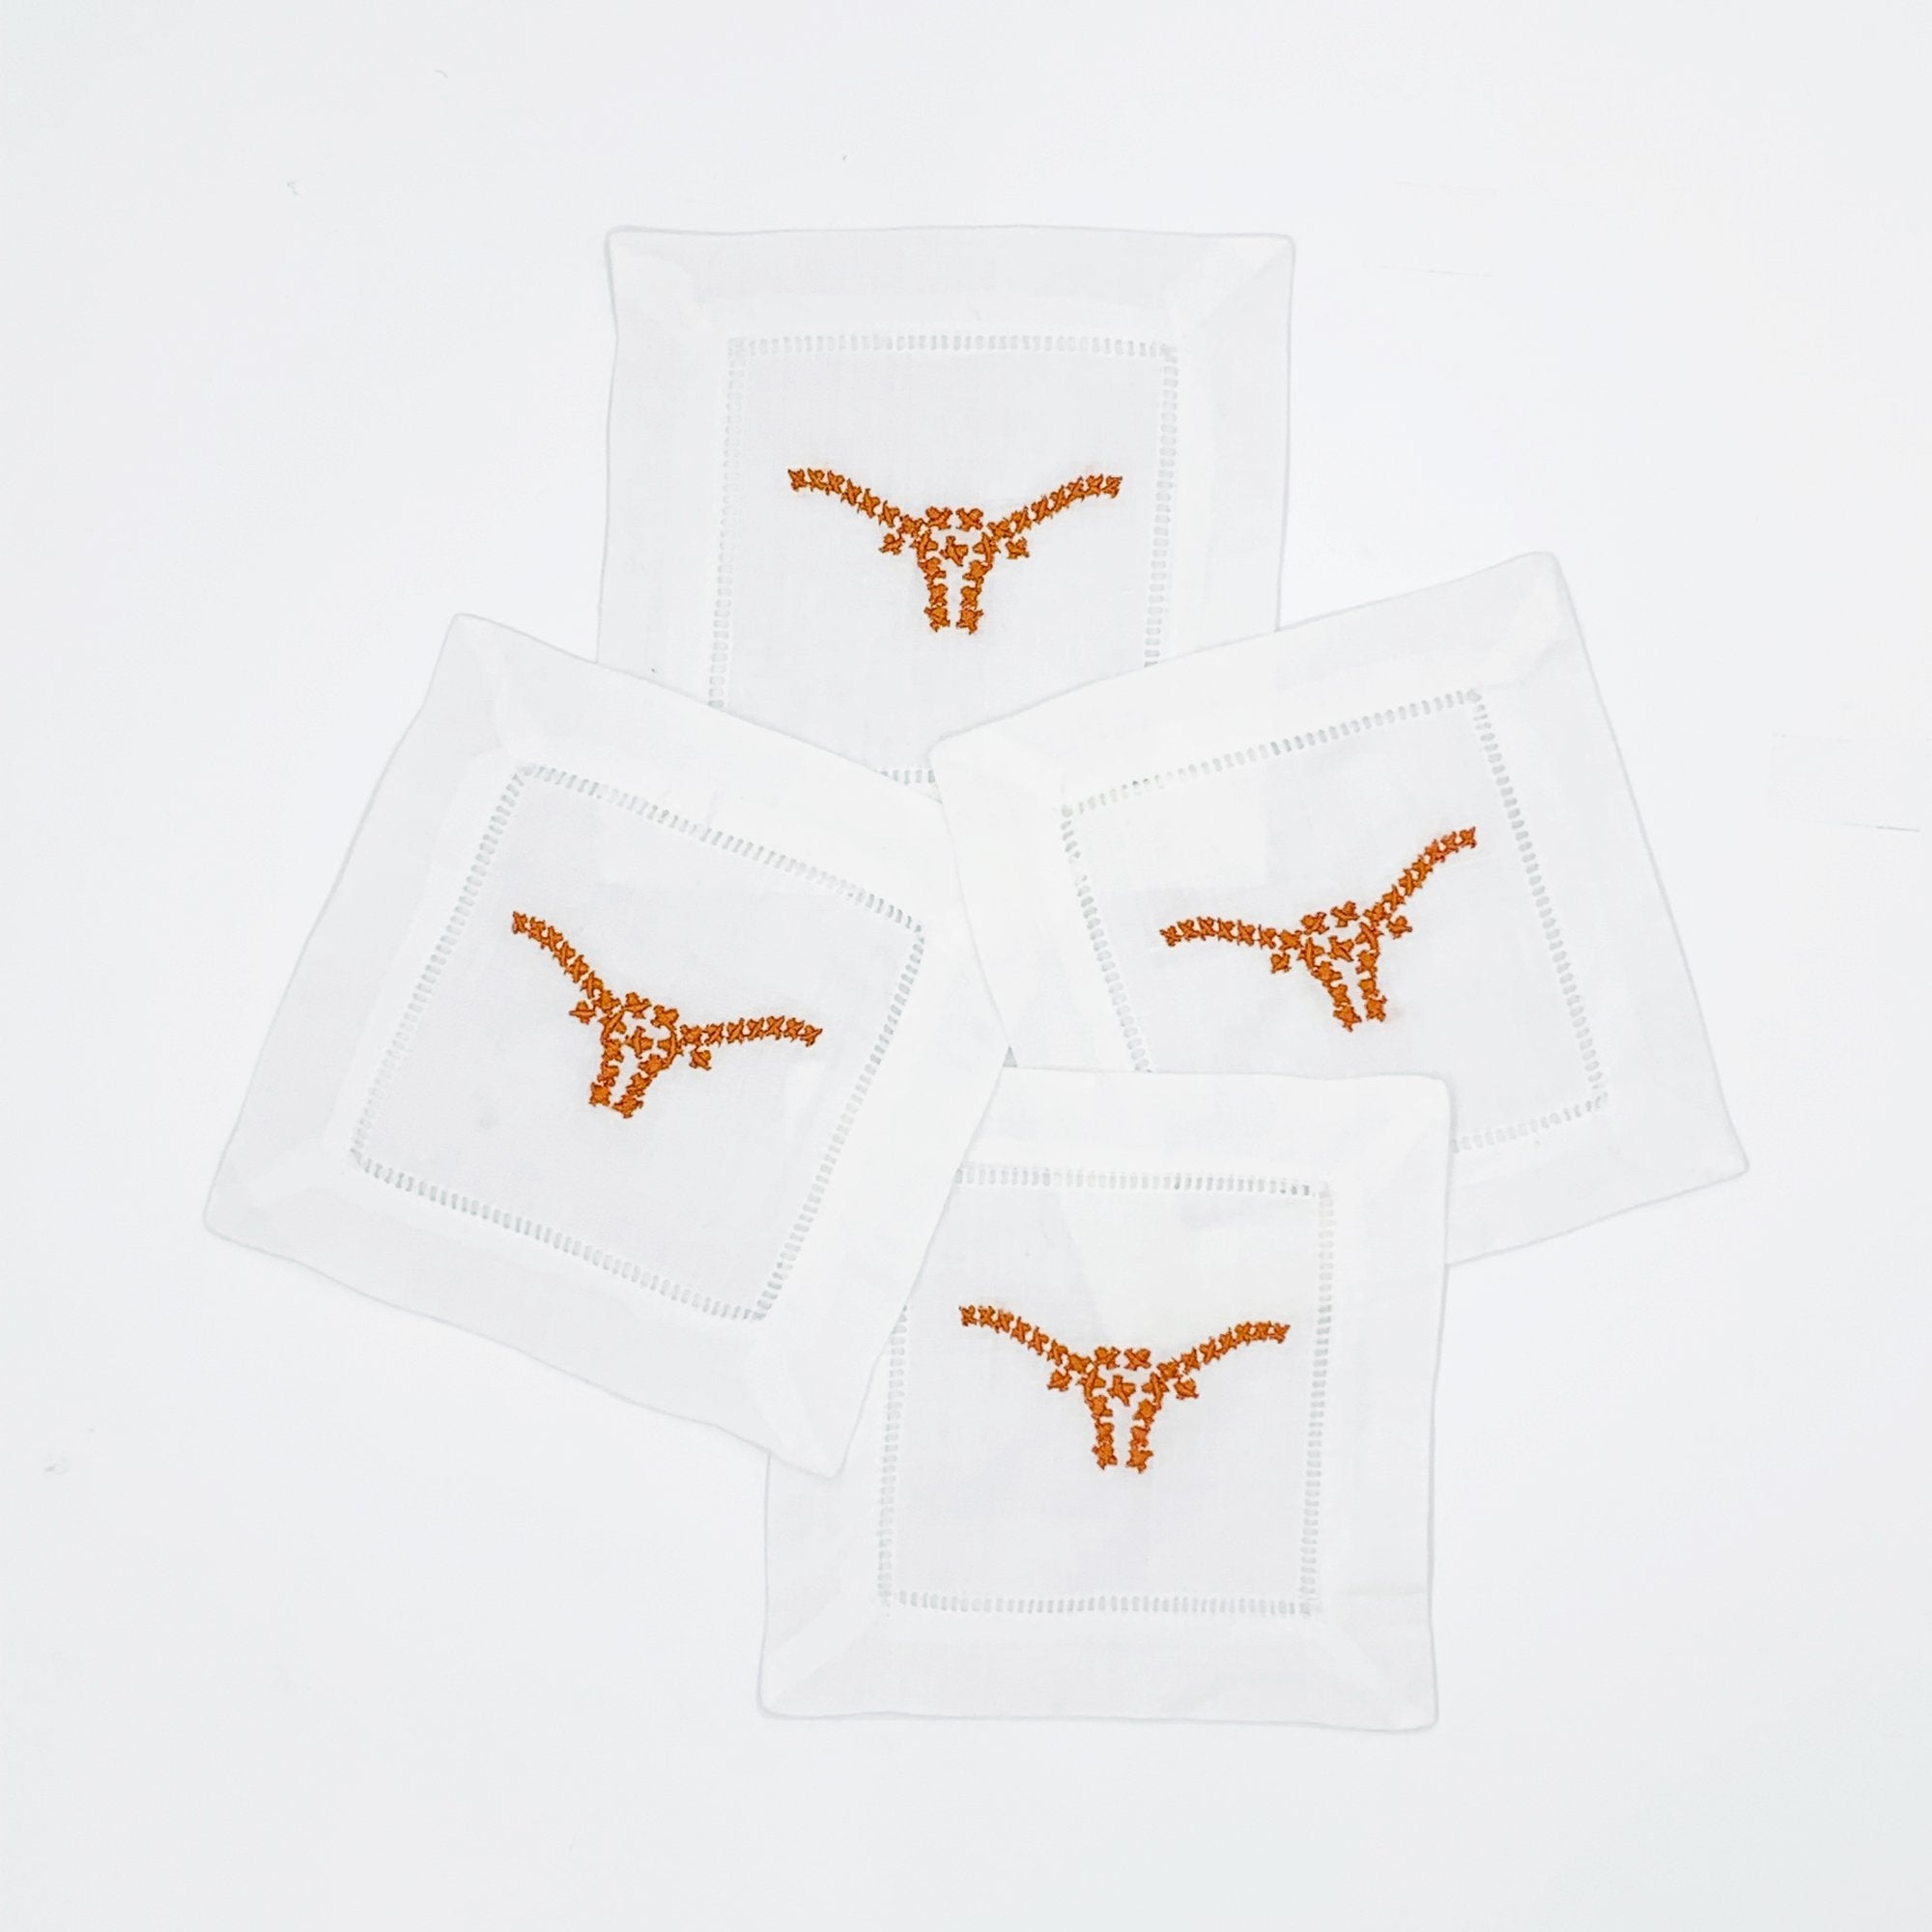 Texas Longhorn Embroidered Cocktail Napkins